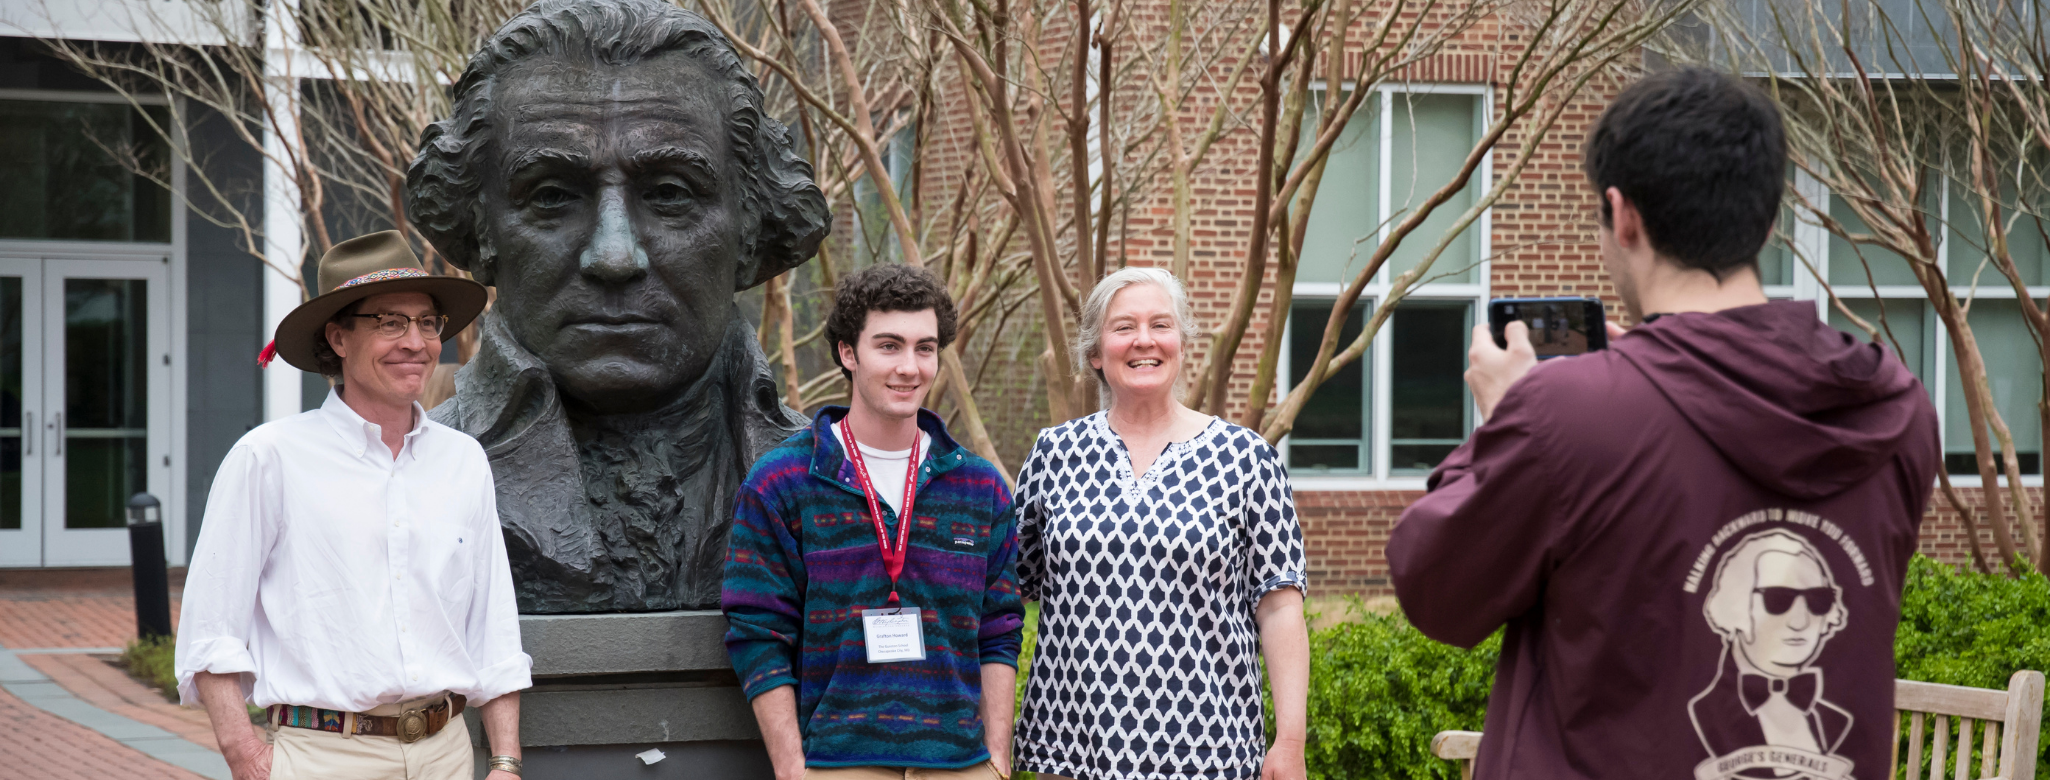 parents and child posing with the george washington statue at admitted students day